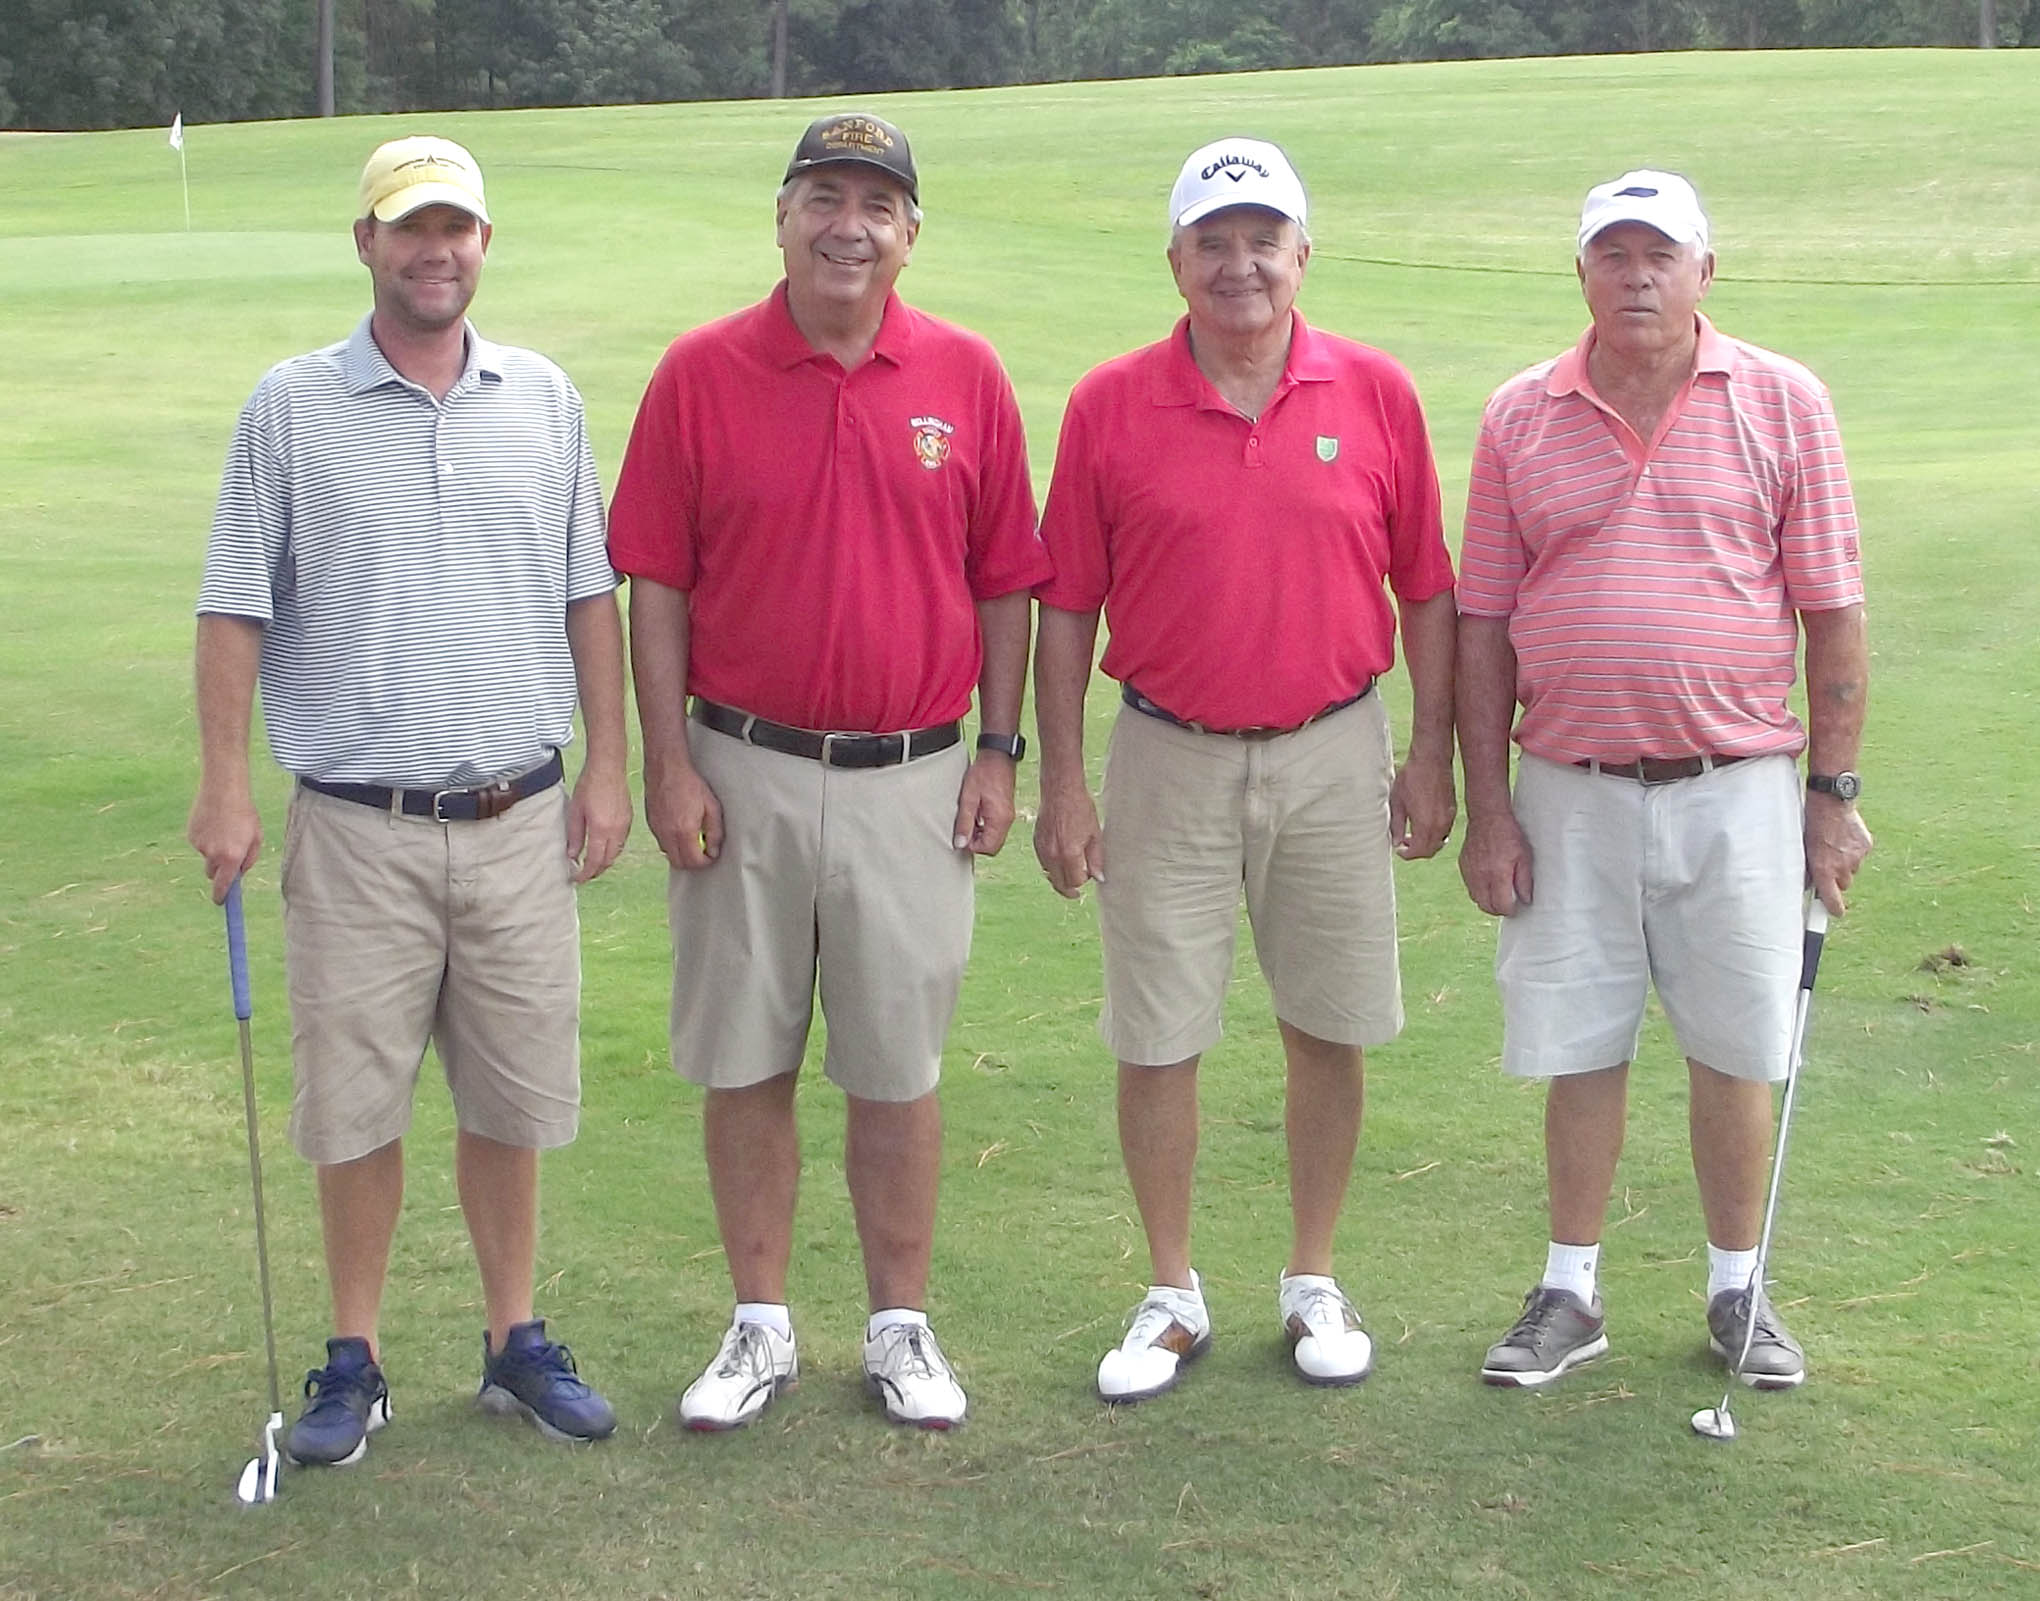 Click to enlarge,  The team of David Wicker, Craig Lister, Ronnie Brown, and Bobby Powell tied for first in the second flight of the afternoon tournament of the CCCC Foundation Lee Golf Classic.